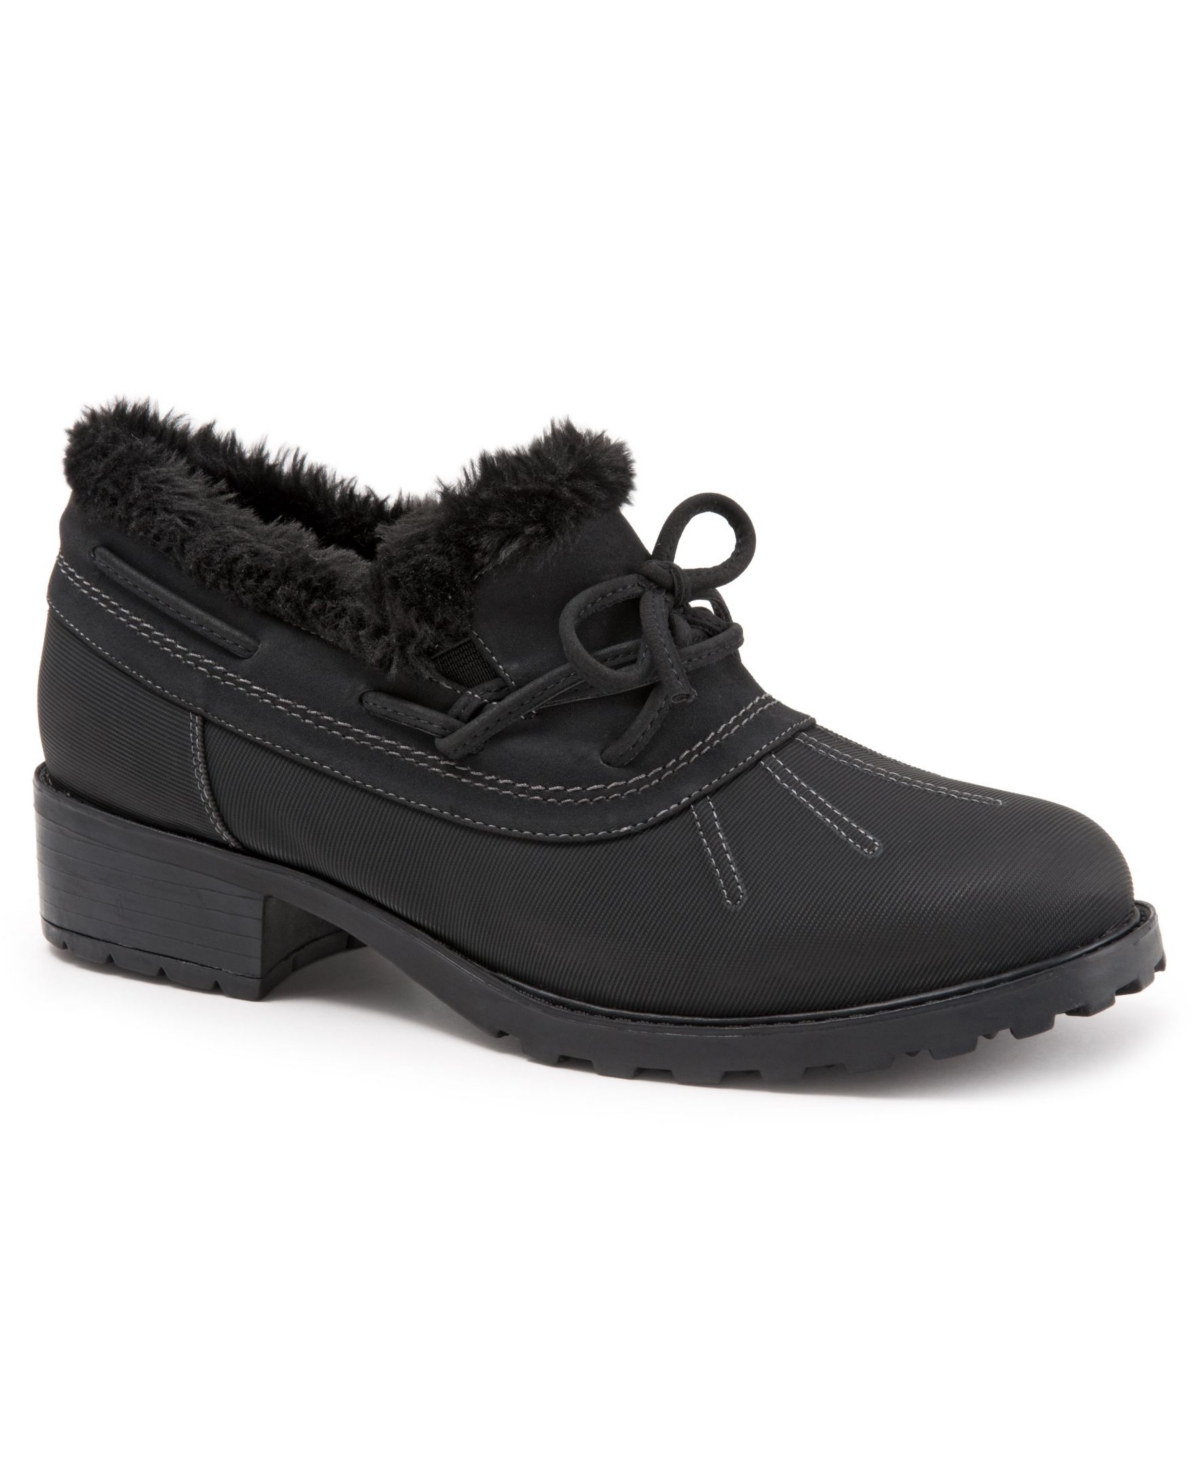 Trotters Belle Cold Weather Boot Women's Shoes